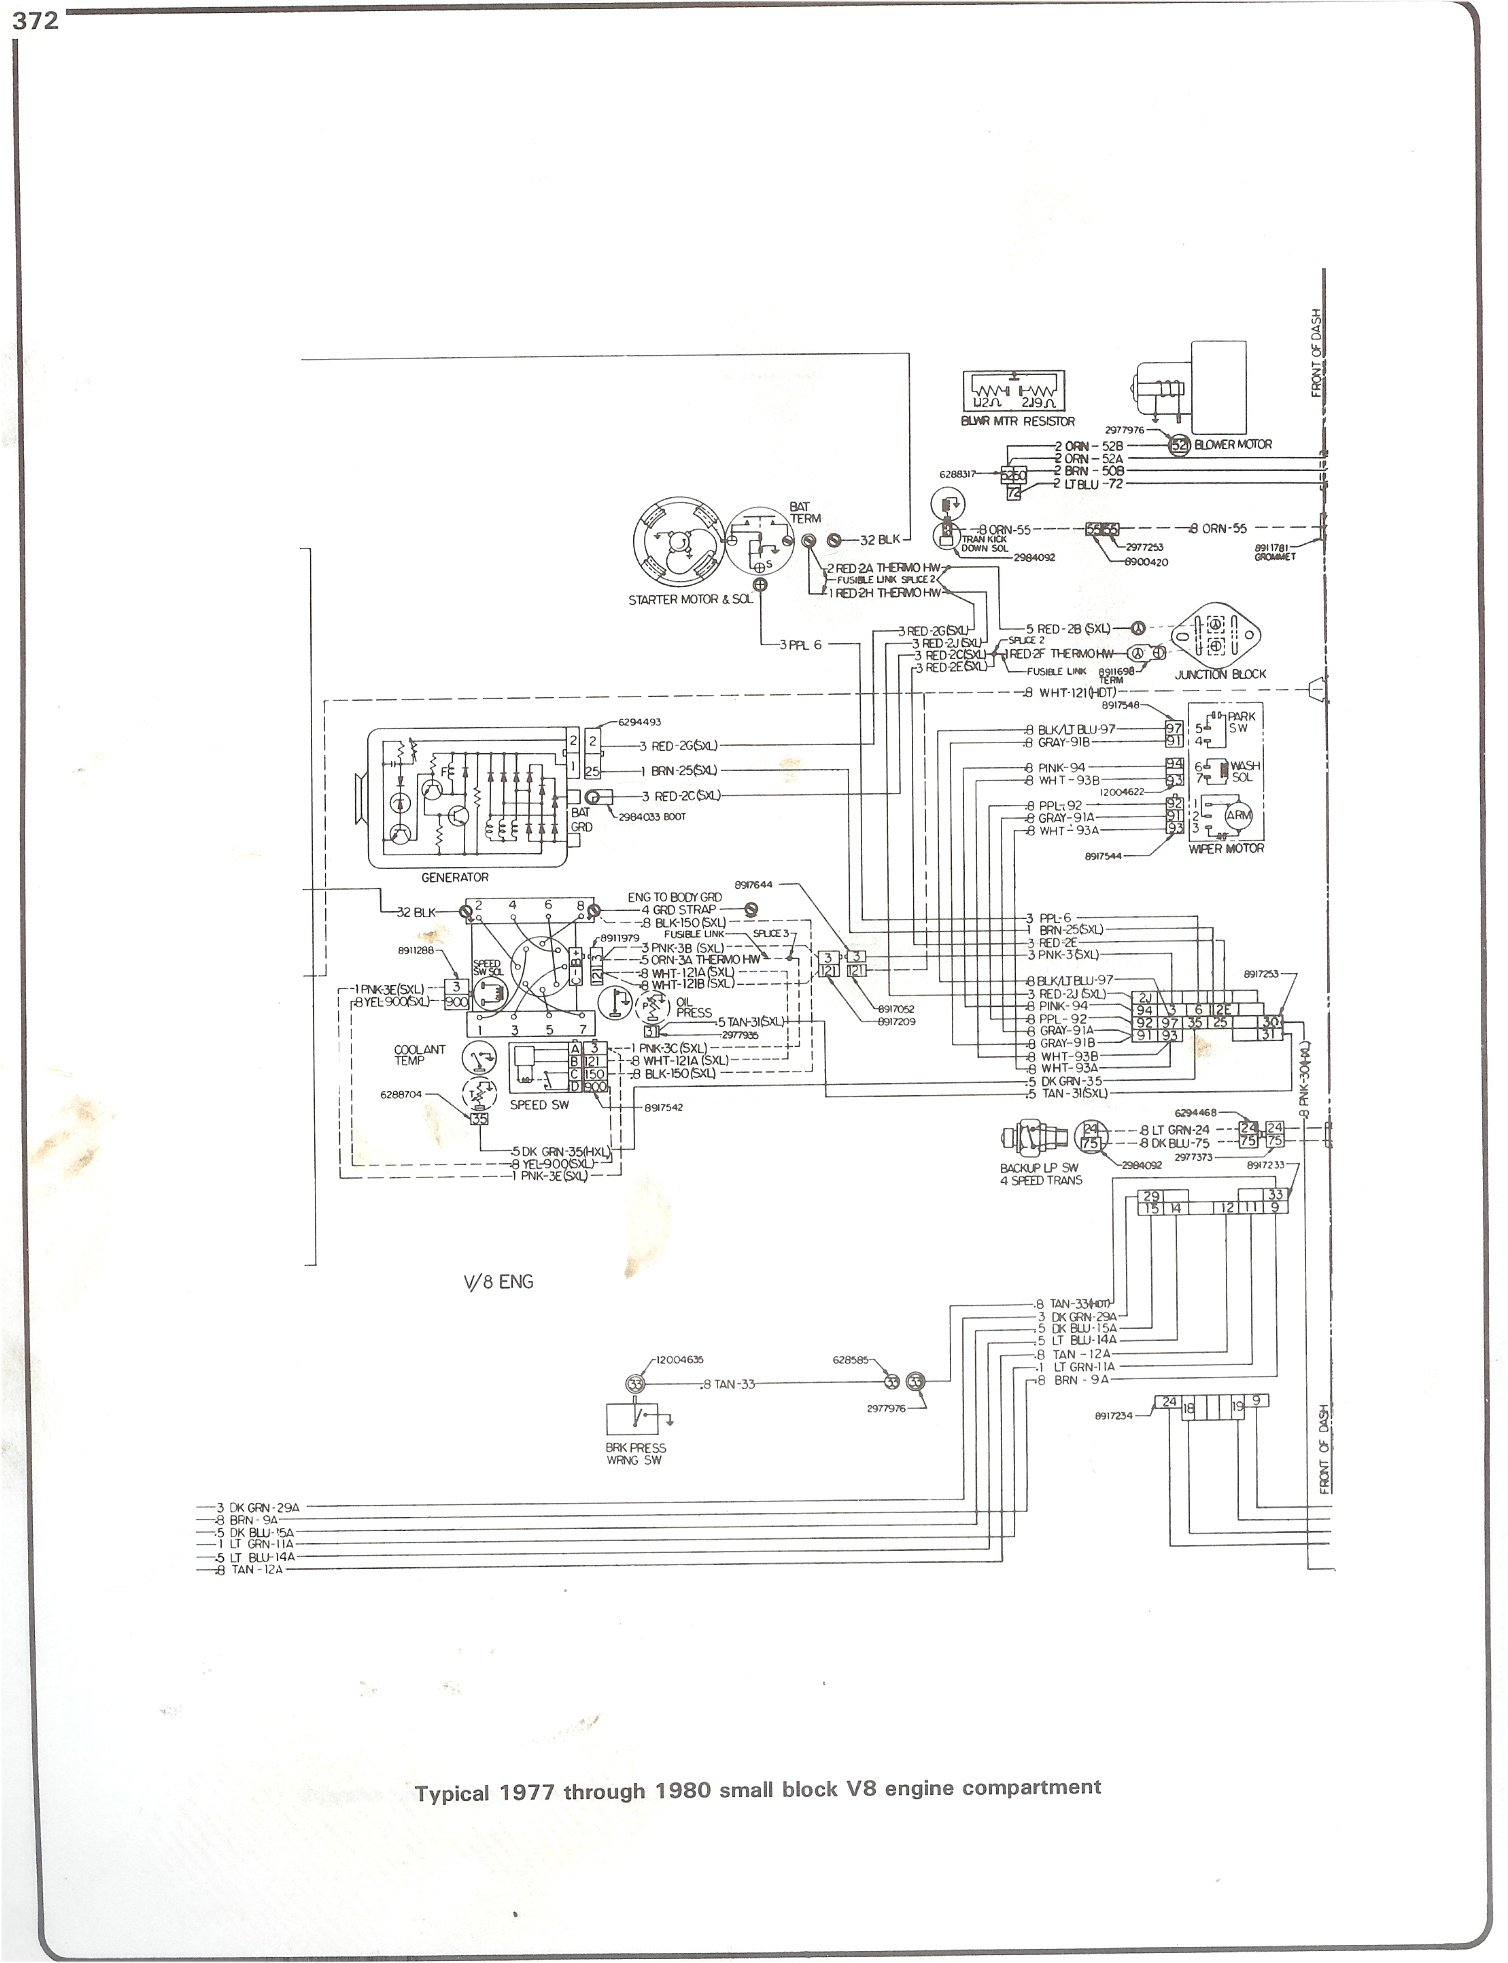 [WRG-8679] 1983 Chevy S10 Wiring Diagram